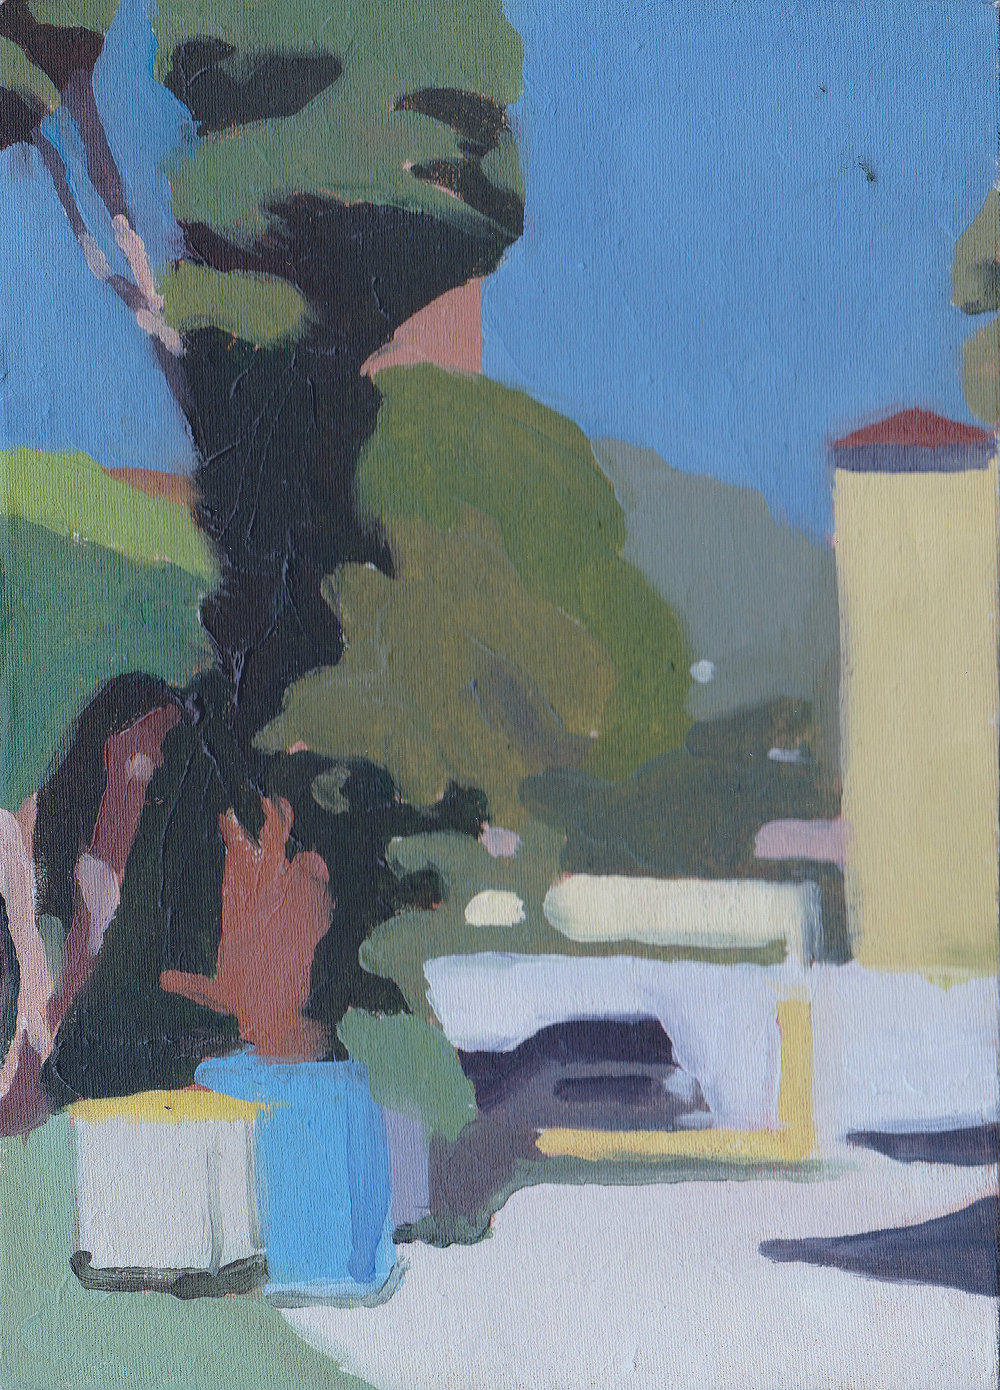 Viale dei cipressi, 2015 Oil on Panel 7 x 5 in.